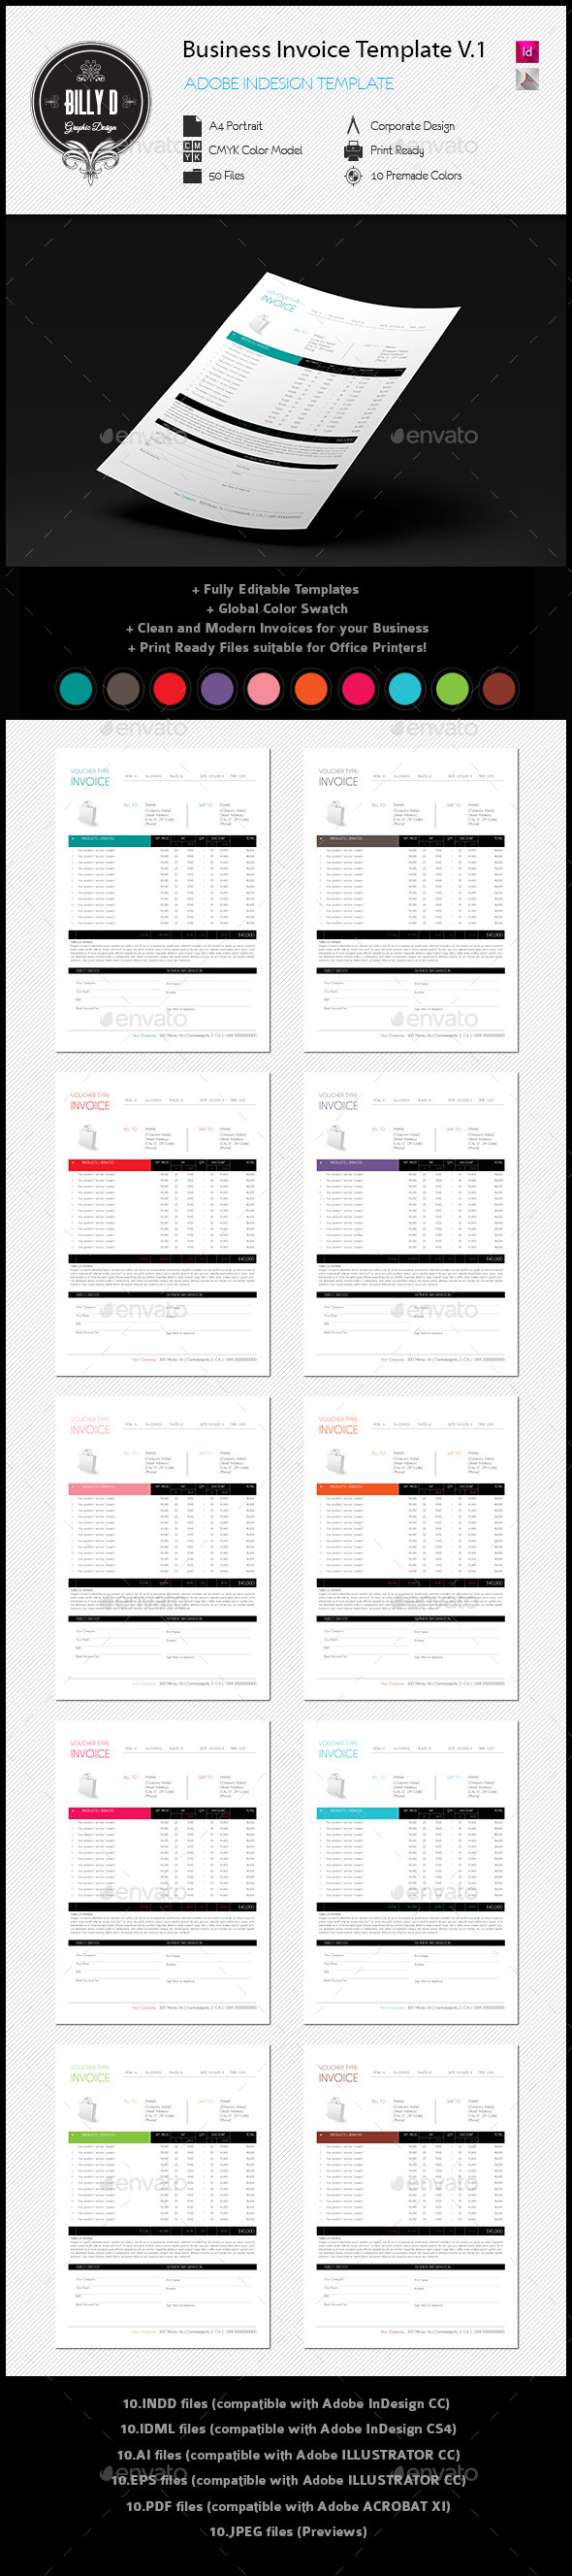 Business Invoice Template | Pinterest